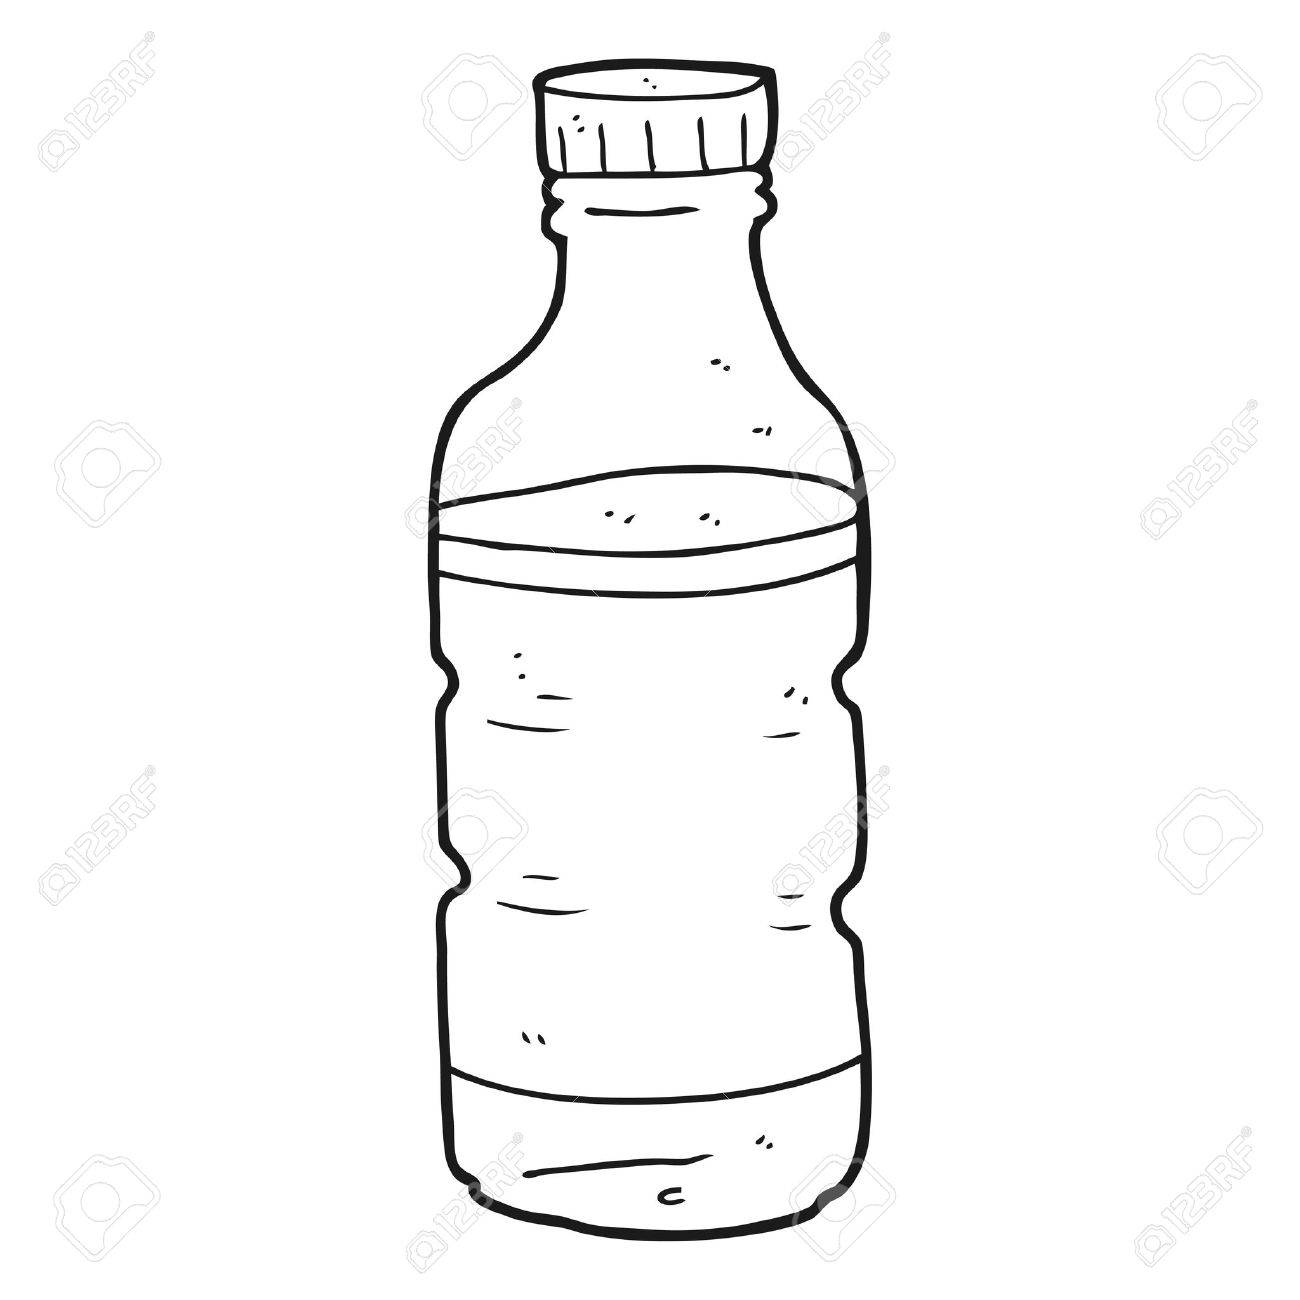 freehand drawn black and white cartoon water bottle royalty free